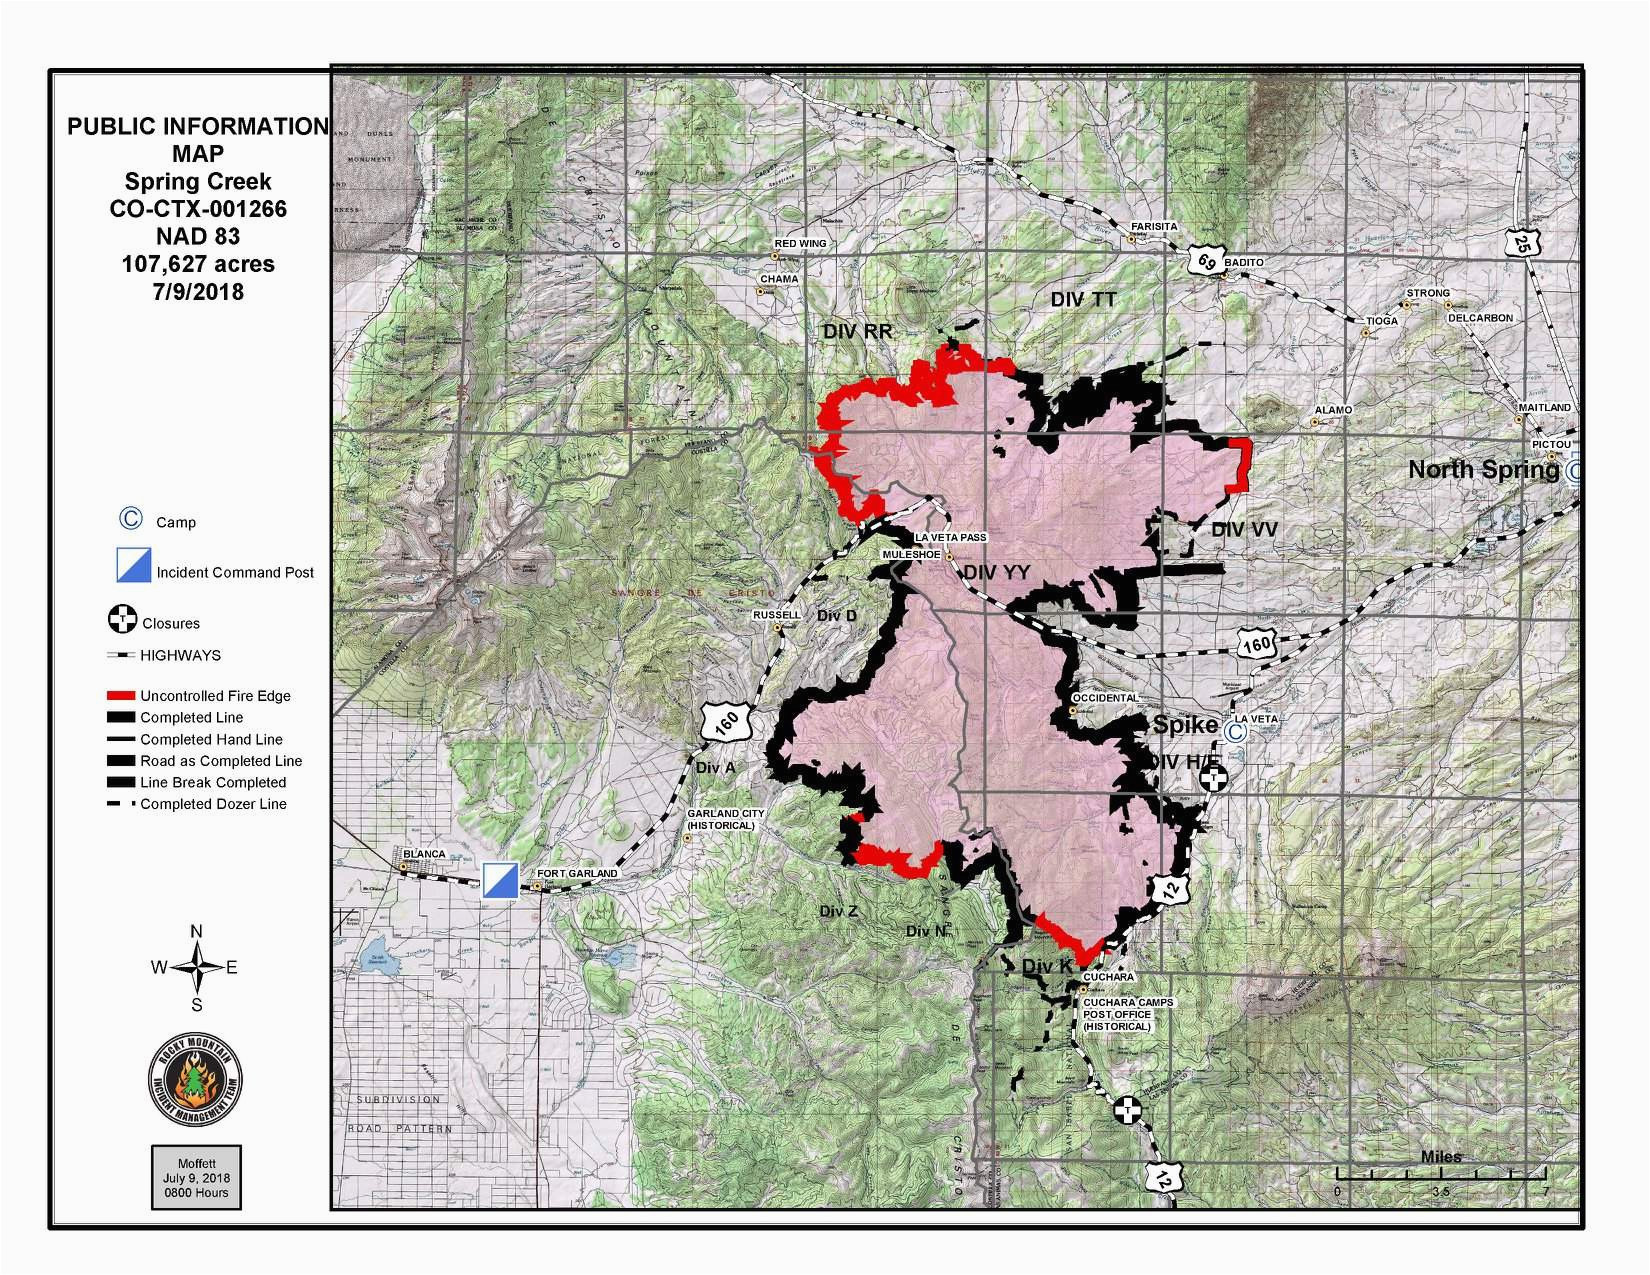 Map Of Colorado Fires today Colorado Fire Maps Fires Near Me ... Map Near Me on map river, map of maine by region, map of maine and new hampshire, map idaho, map of western maine towns, map mississippi,